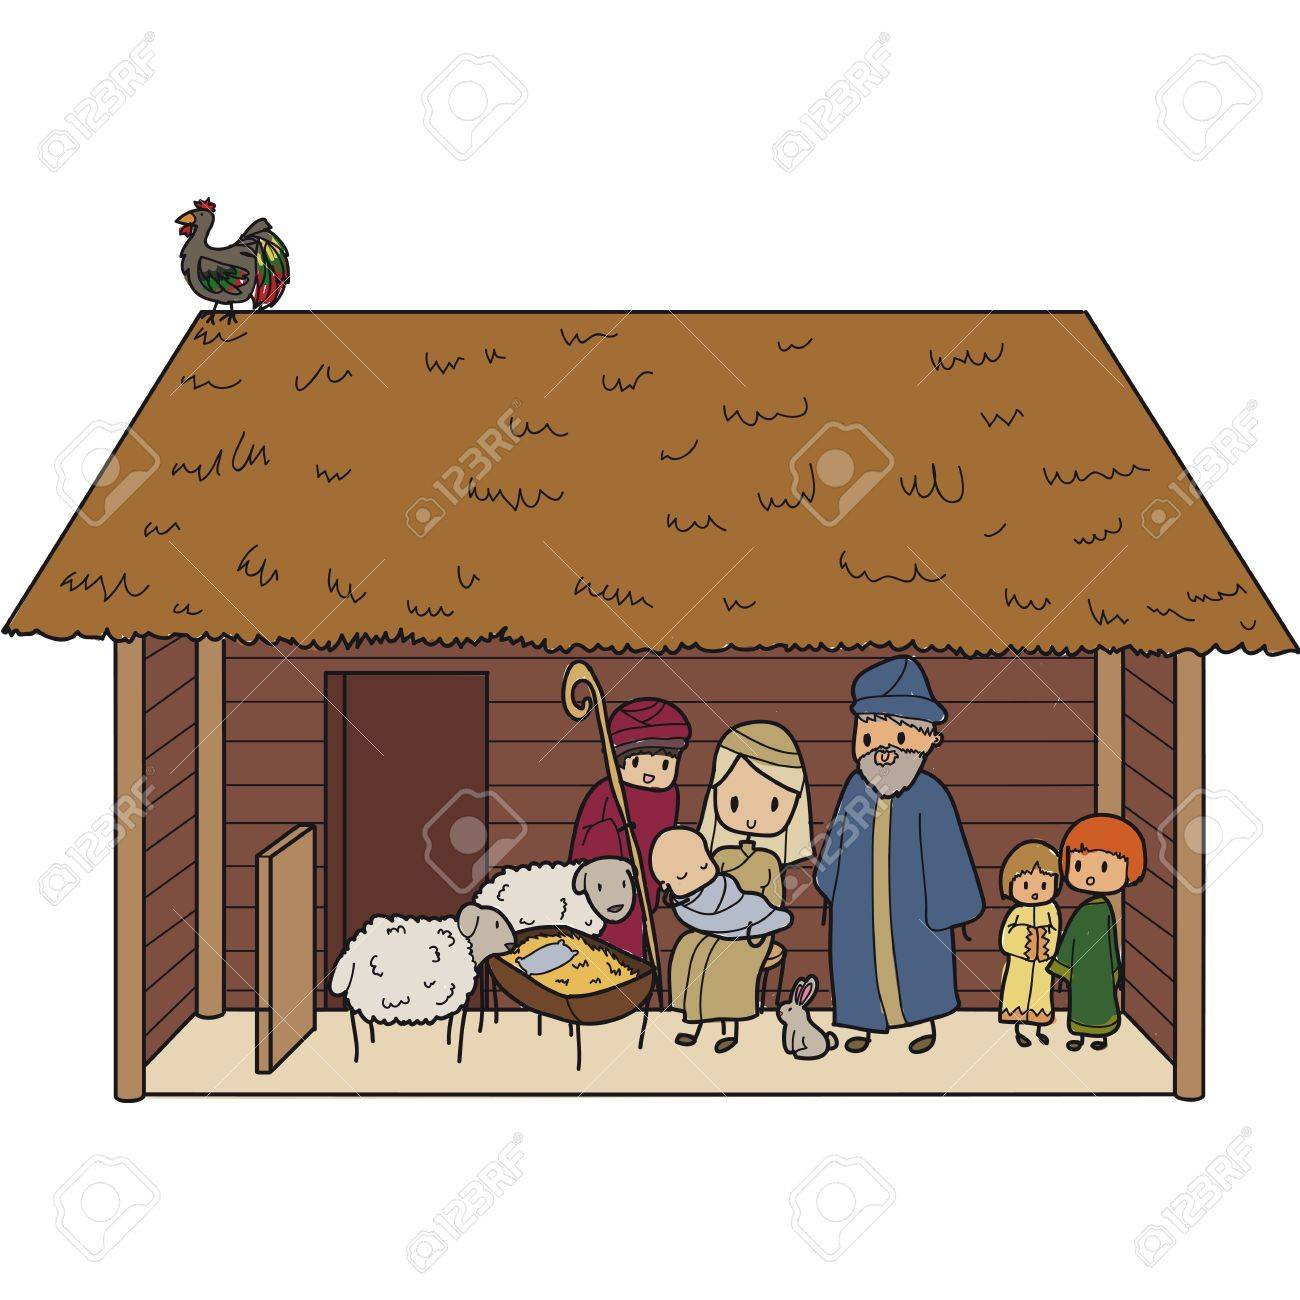 illustration of a Christmas crib with Virgin Mary and baby Jesus - 66264688